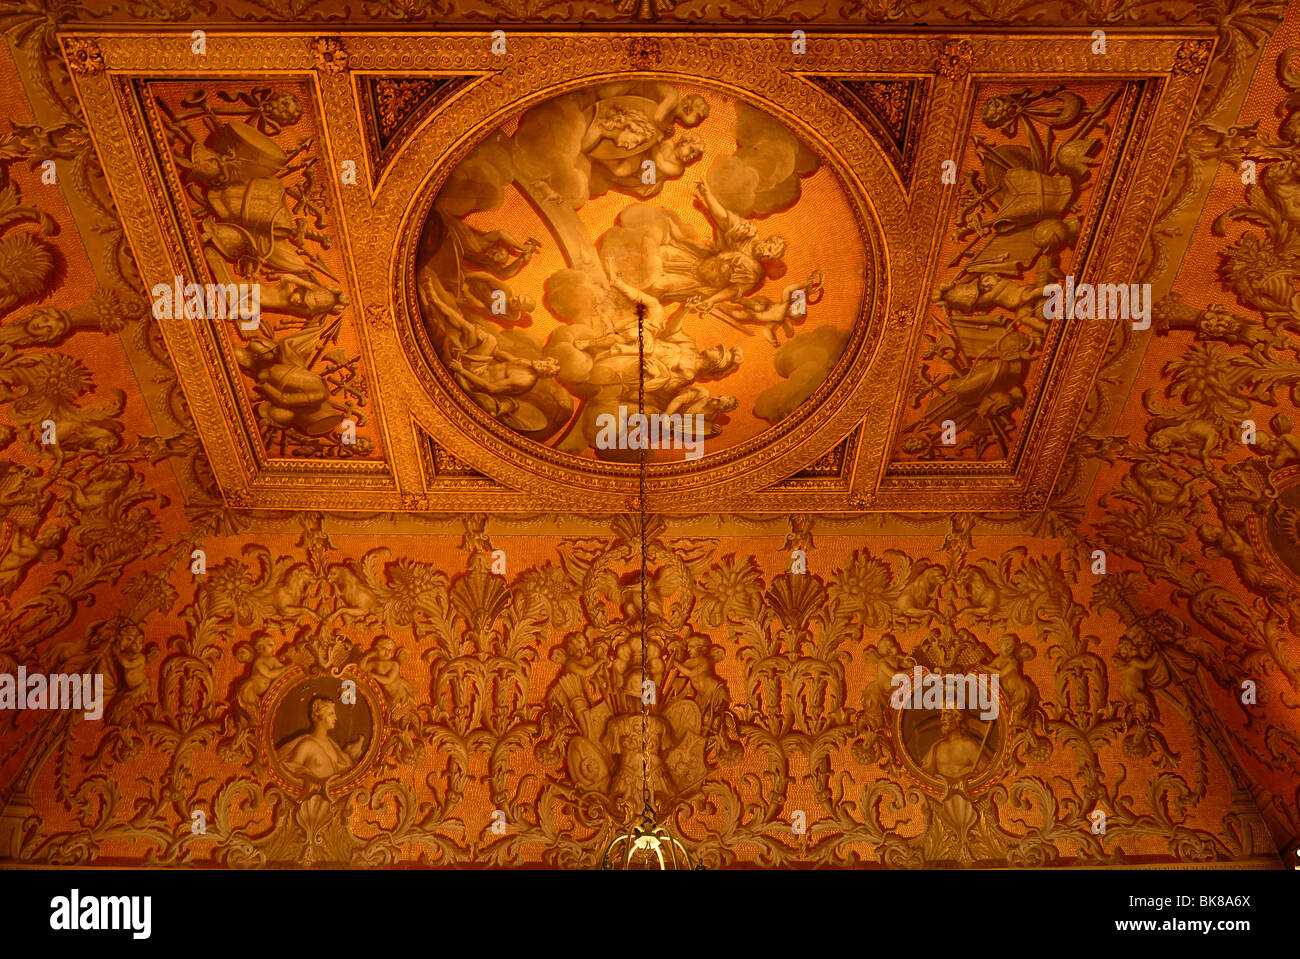 Ceiling painting in the entrance of Stowe School, private school since 1923, architecture from 1770, Classicism, - Stock Image